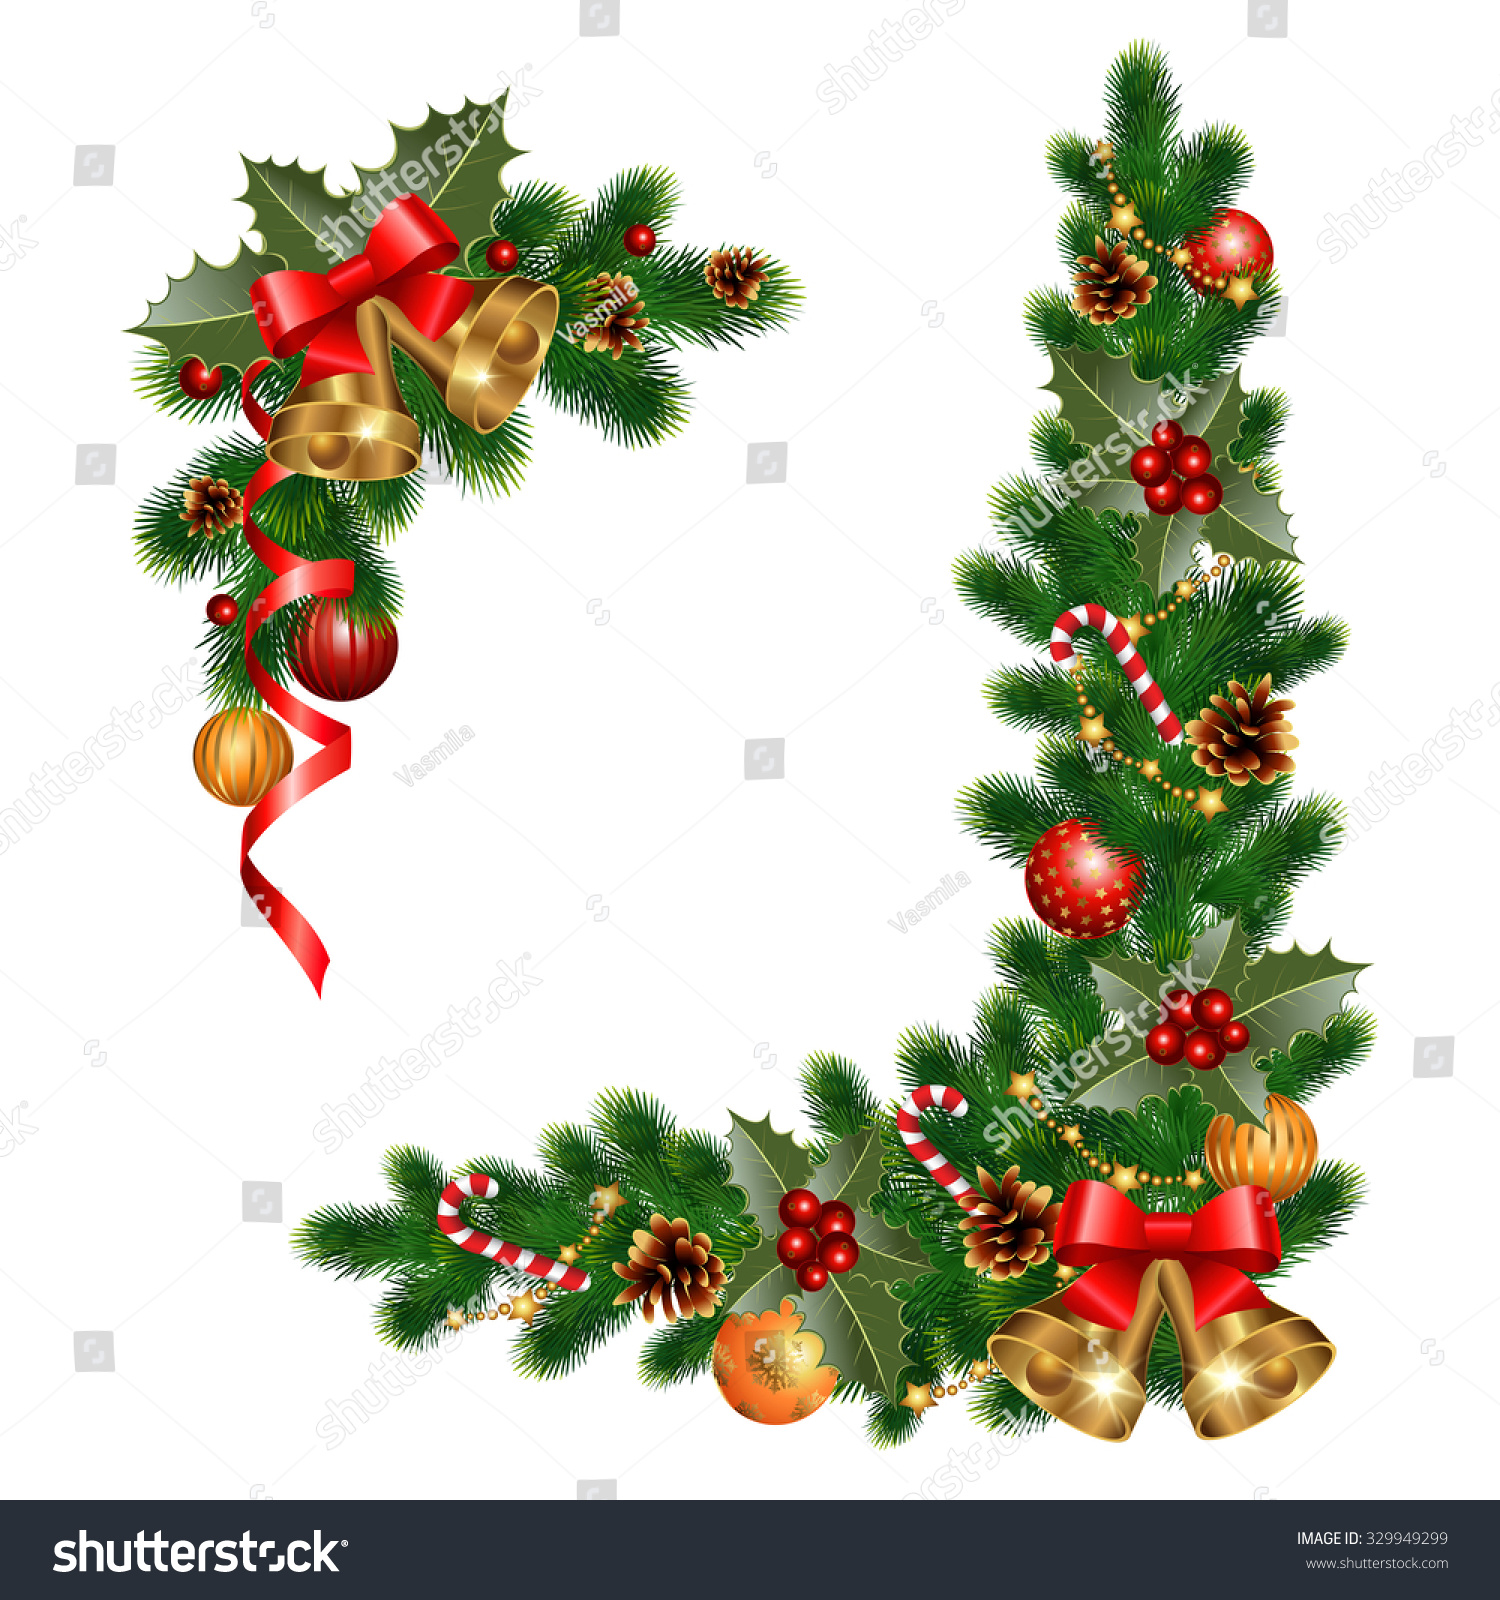 Christmas Decorations With Fir Tree And Decorative Elements Vector  Illustration